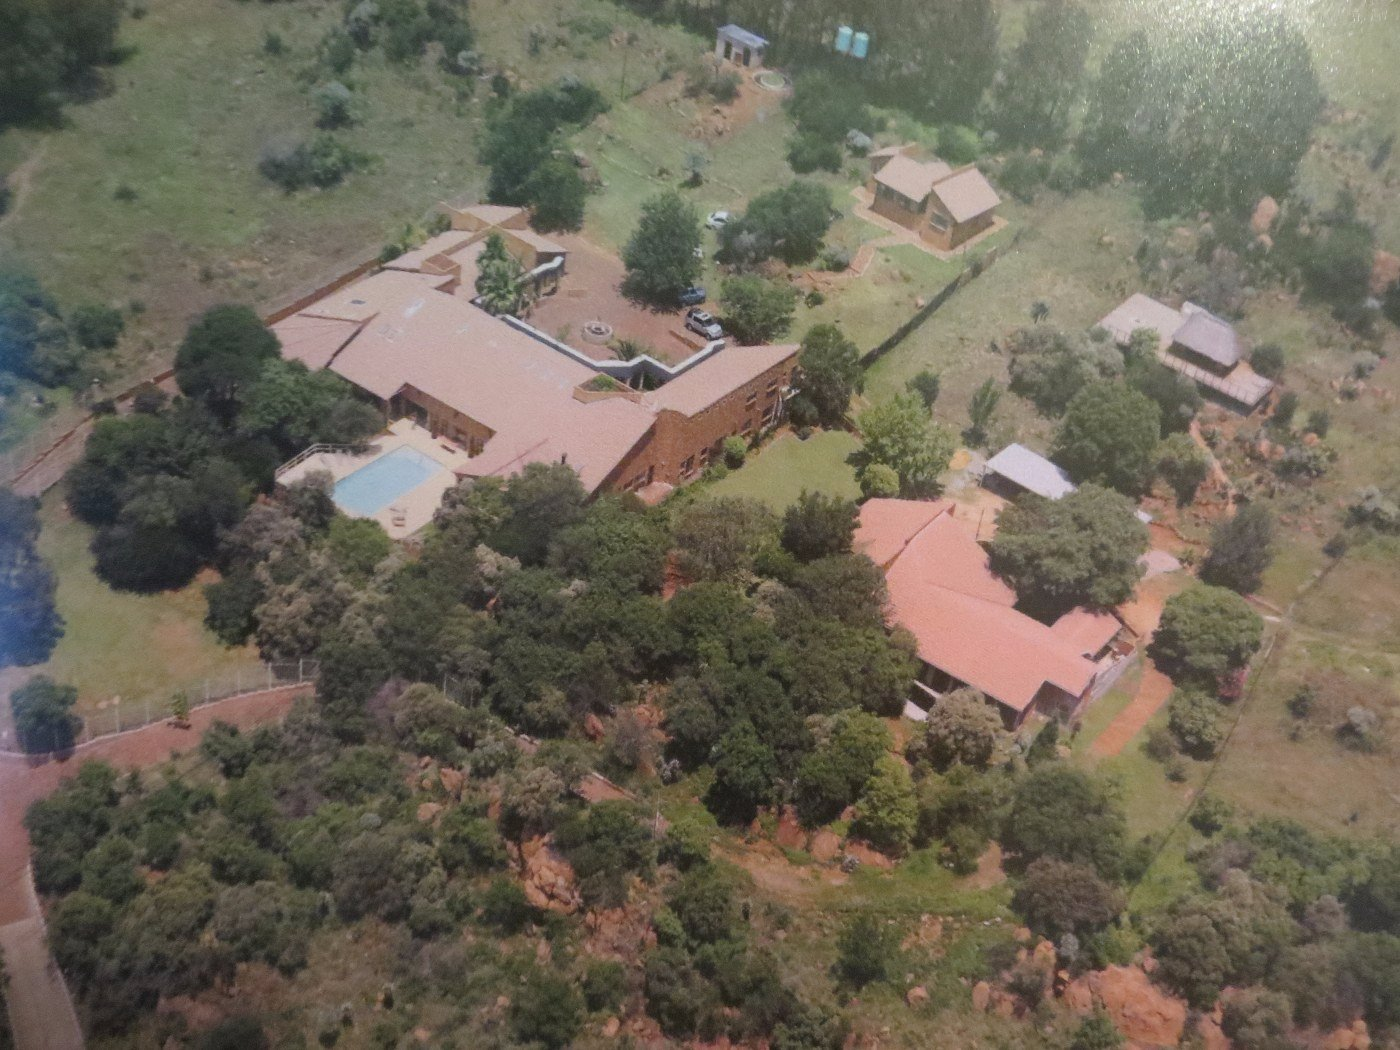 Johannesburg, Meredale Property  | Houses For Sale Meredale, Meredale, Commercial  property for sale Price:12,100,000